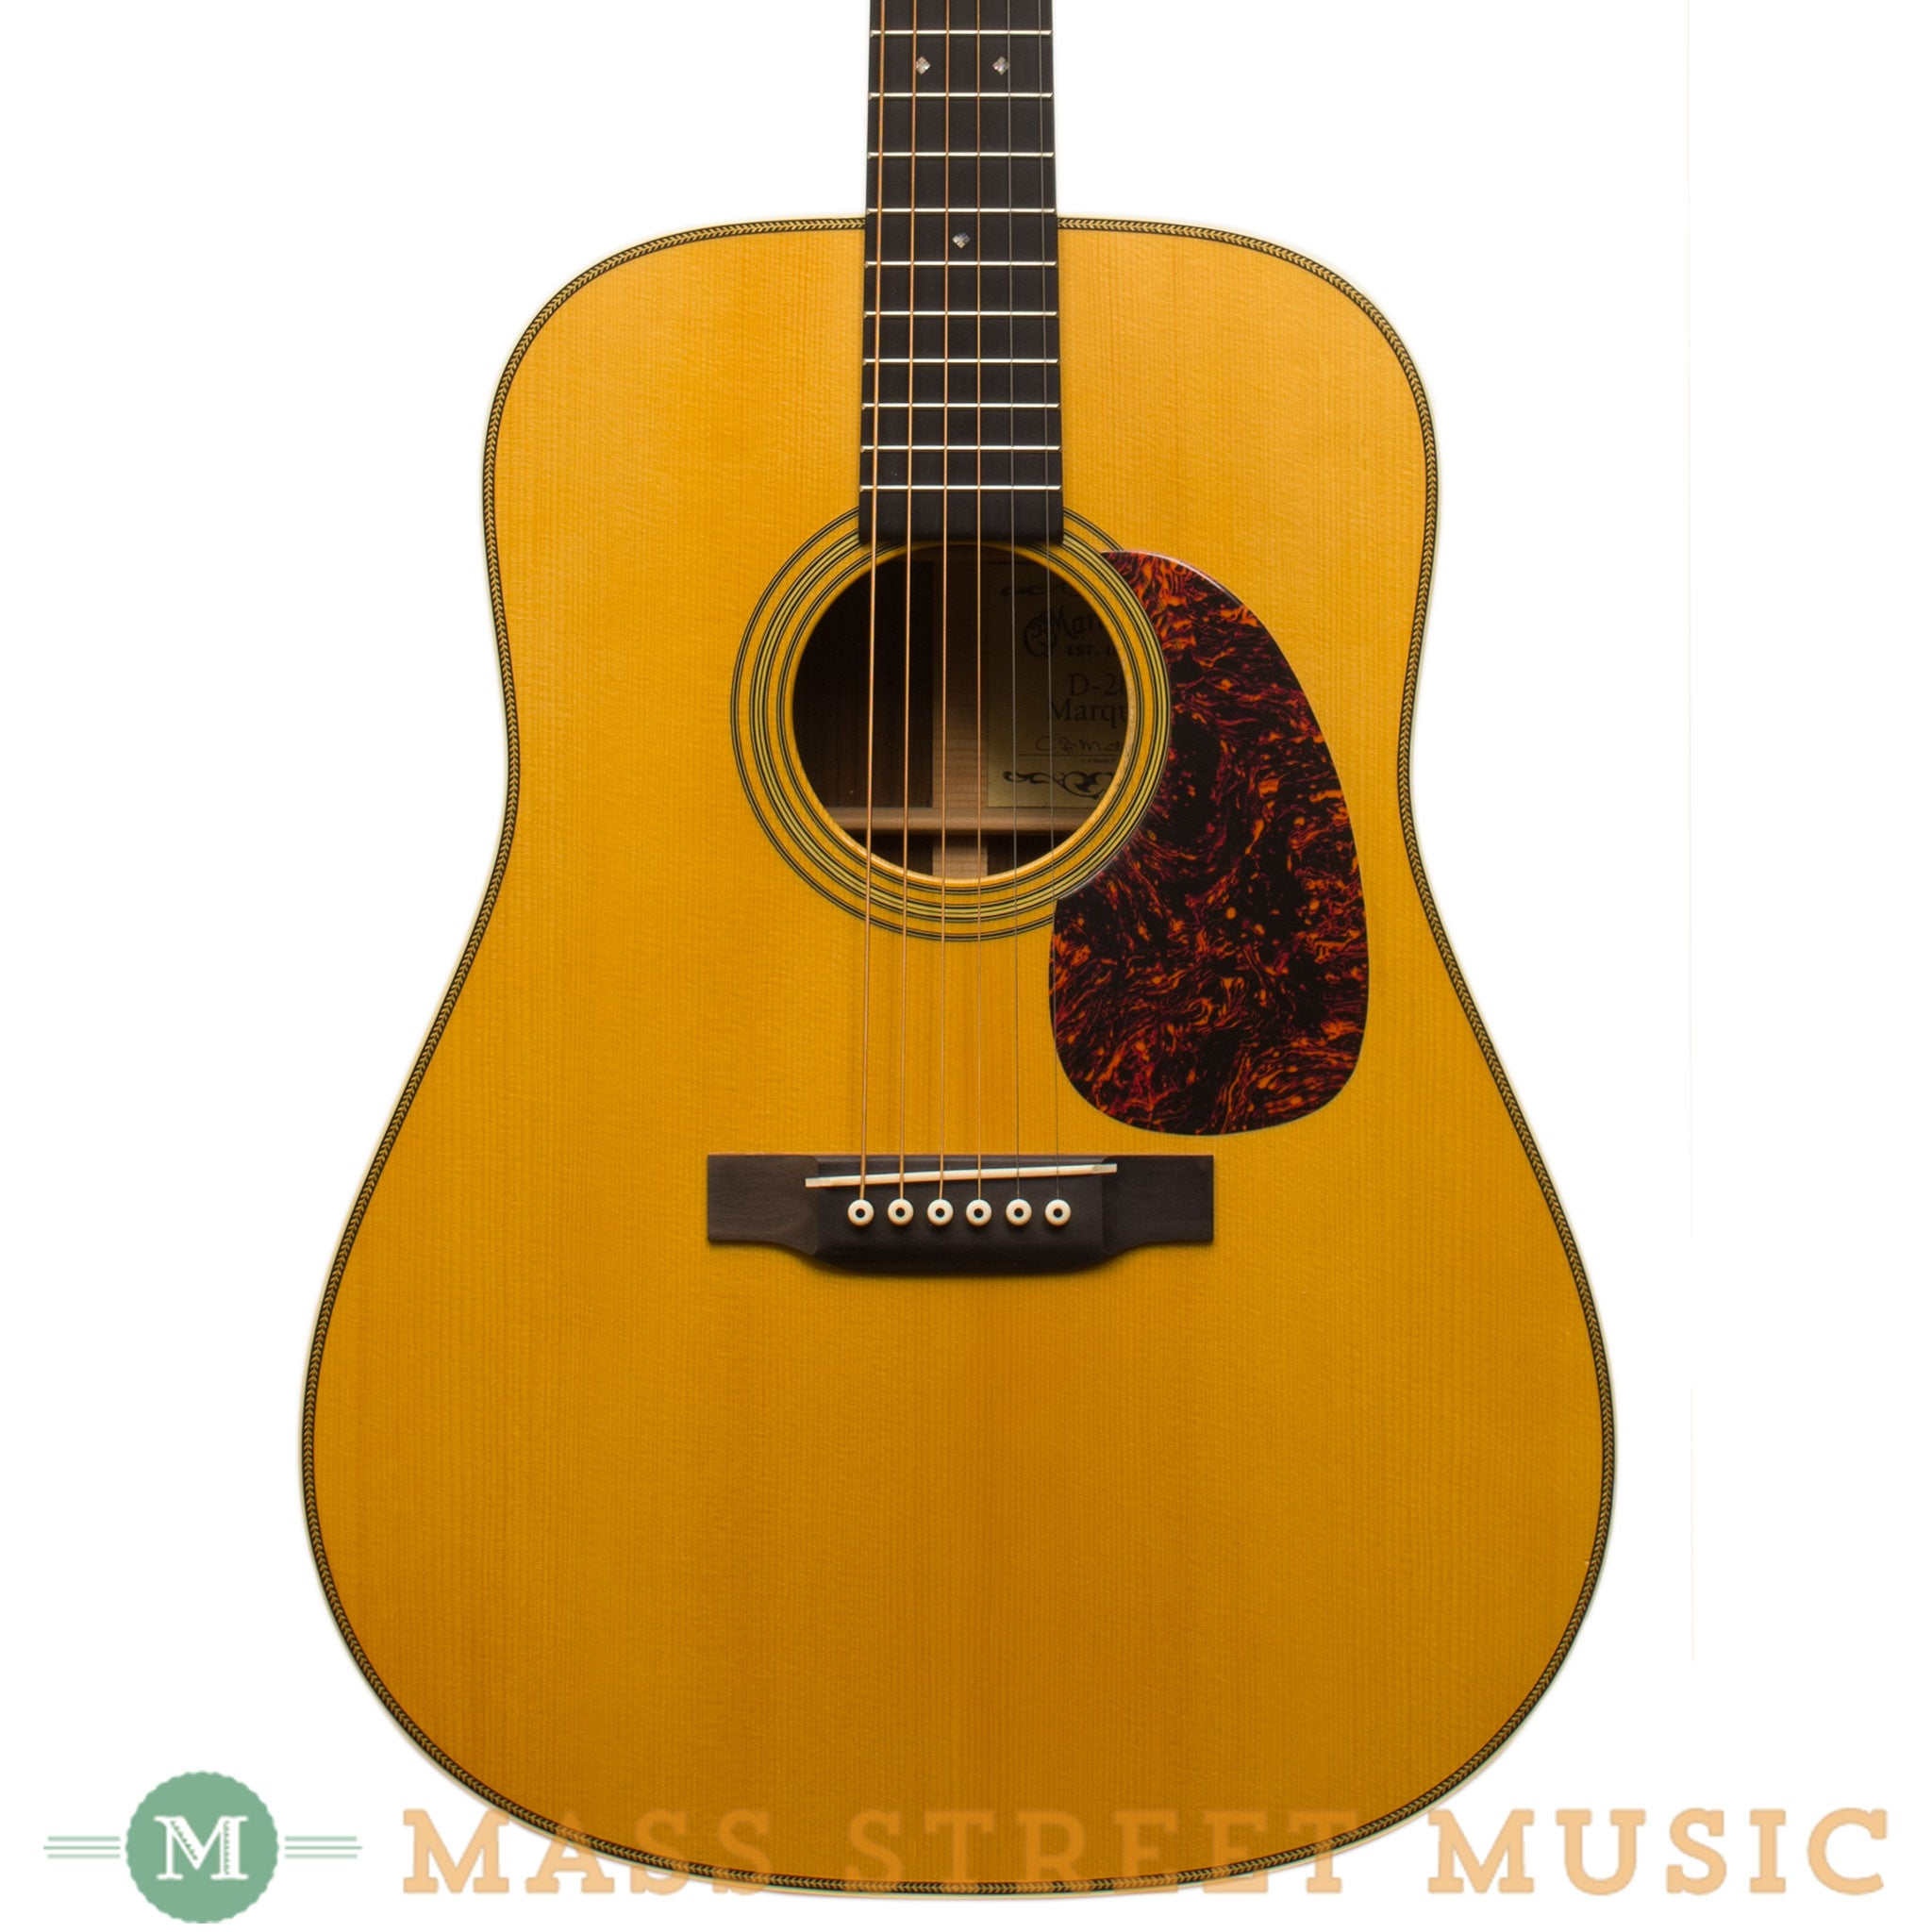 Martin Acoustic Guitars 2004 D 28 Marquis Used Mass Street Music